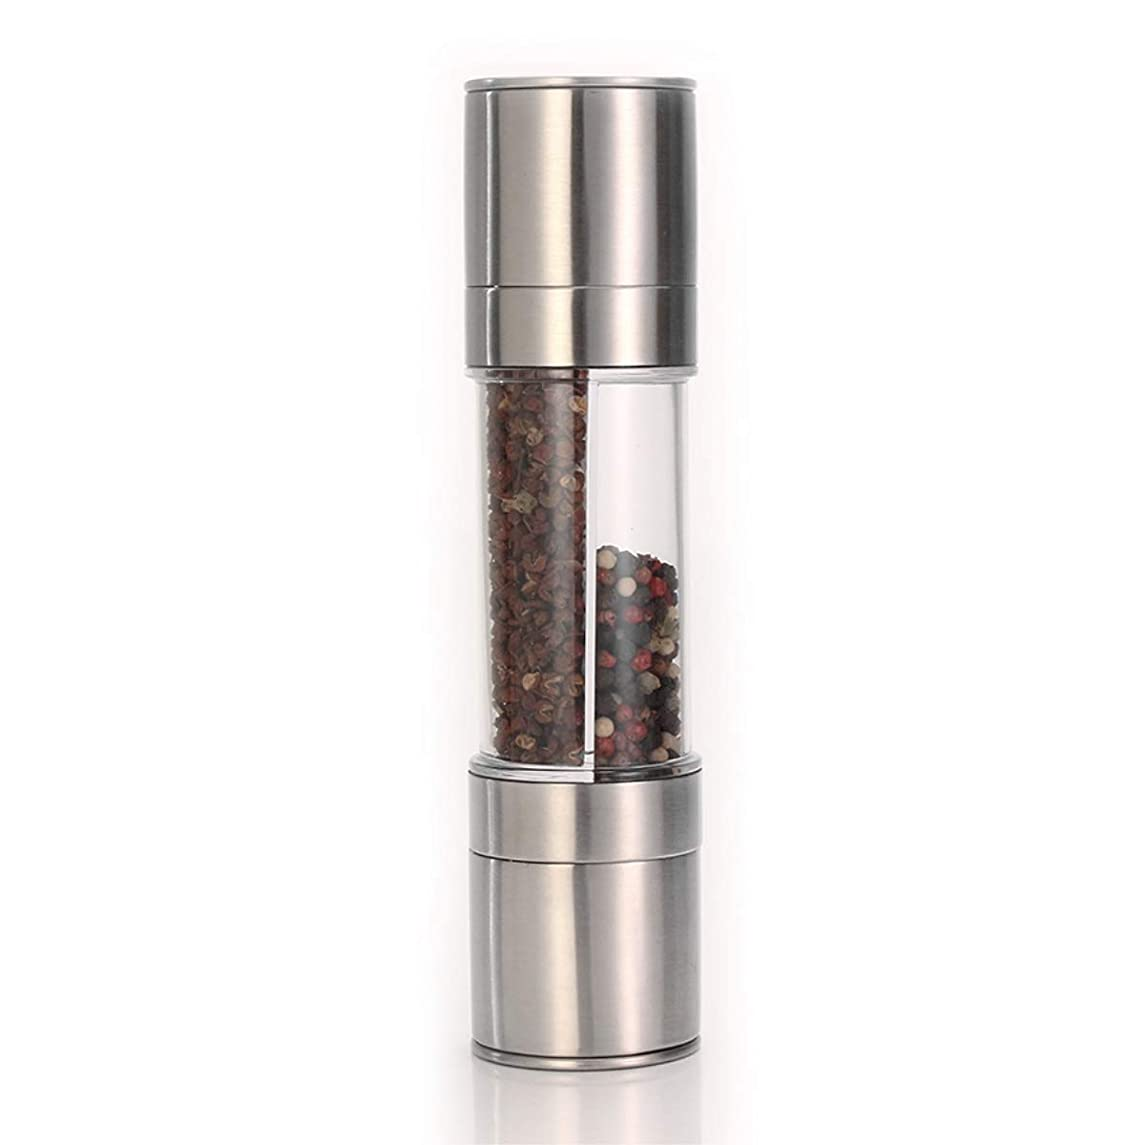 IMIKE 2 in 1 Premium Stainless Steel Pepper Grinder and Salt Grinder, Adjustable Coarseness Pepper Mill Shaker Spice Grinder